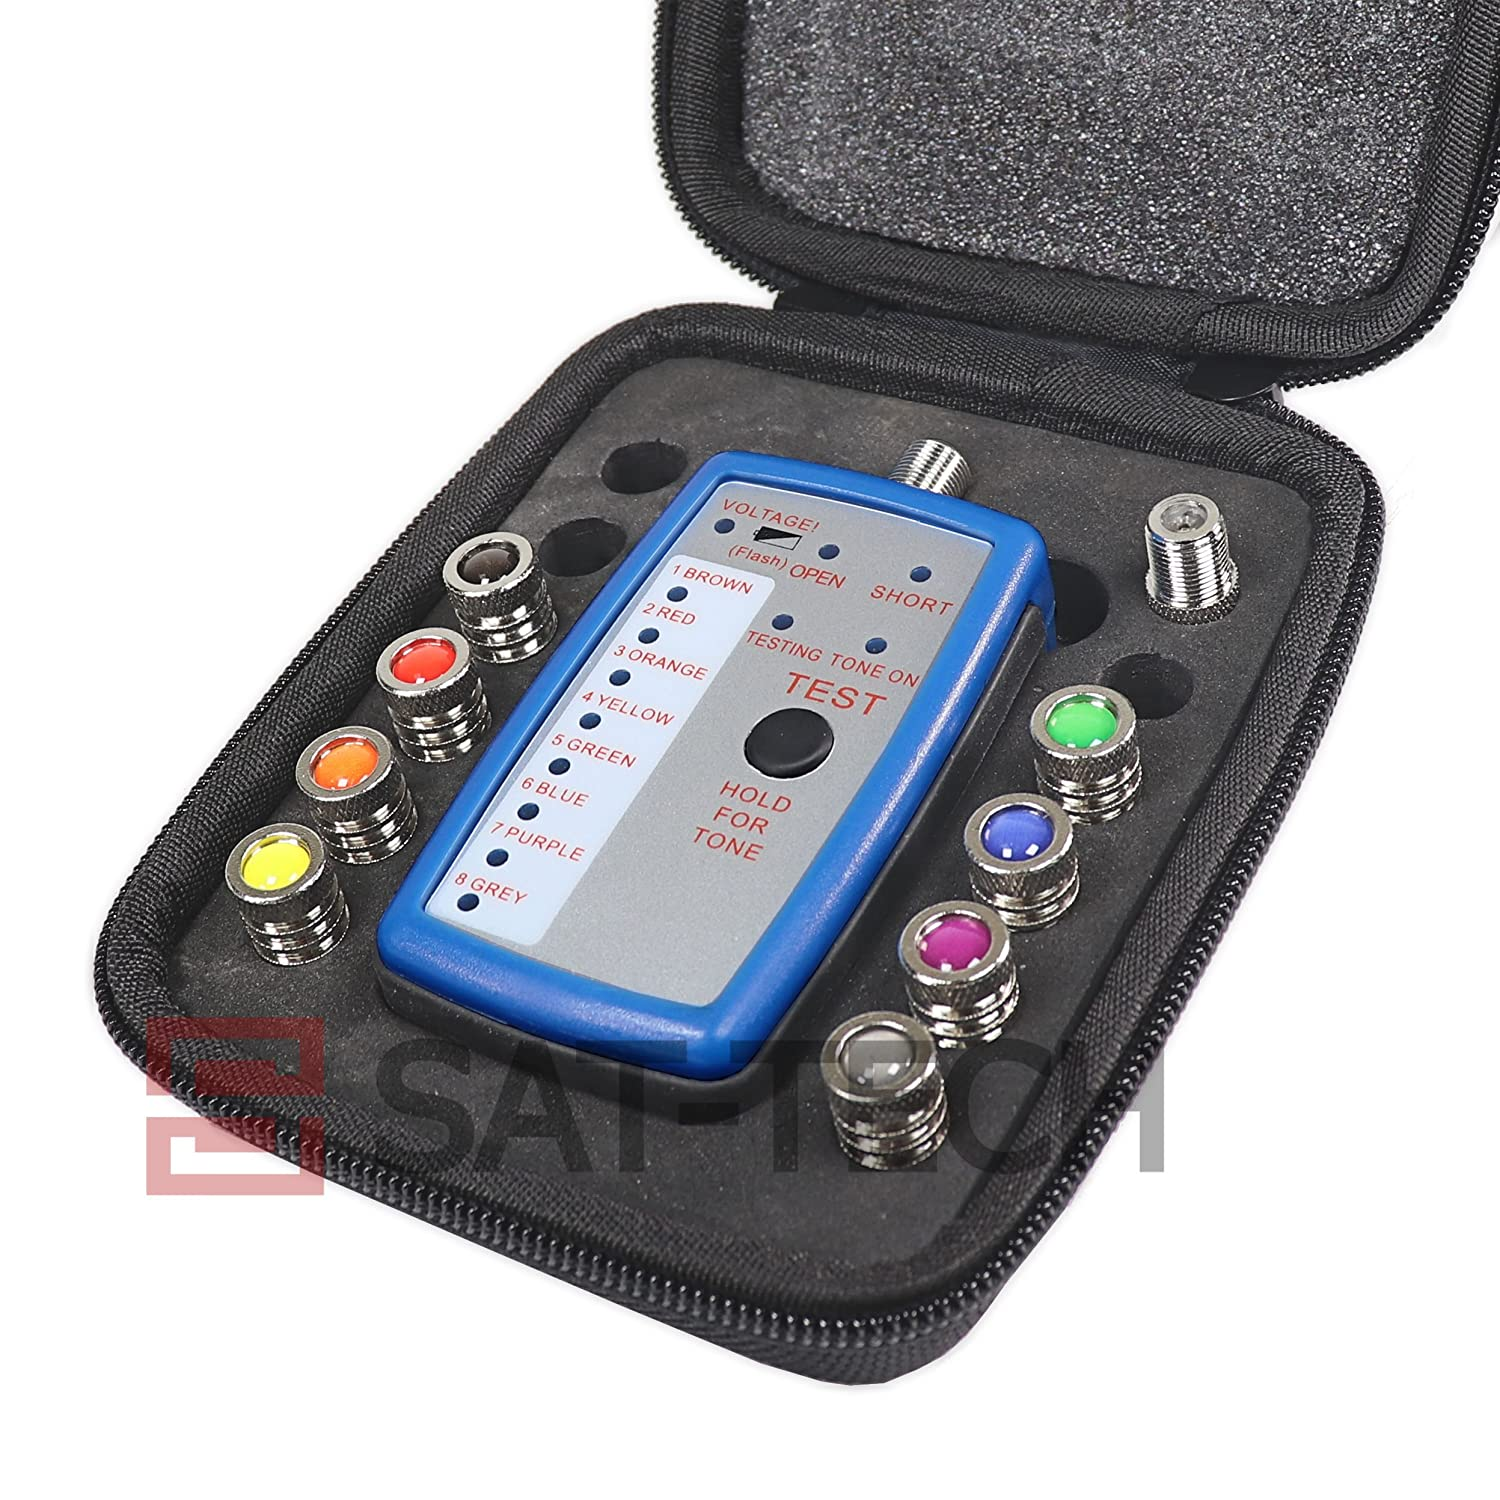 Advantage Adv1018 8 Way Coax Cable Mapper Home Audio Toner Tester For Rg6 And Rg59 Circuit Testers Theater